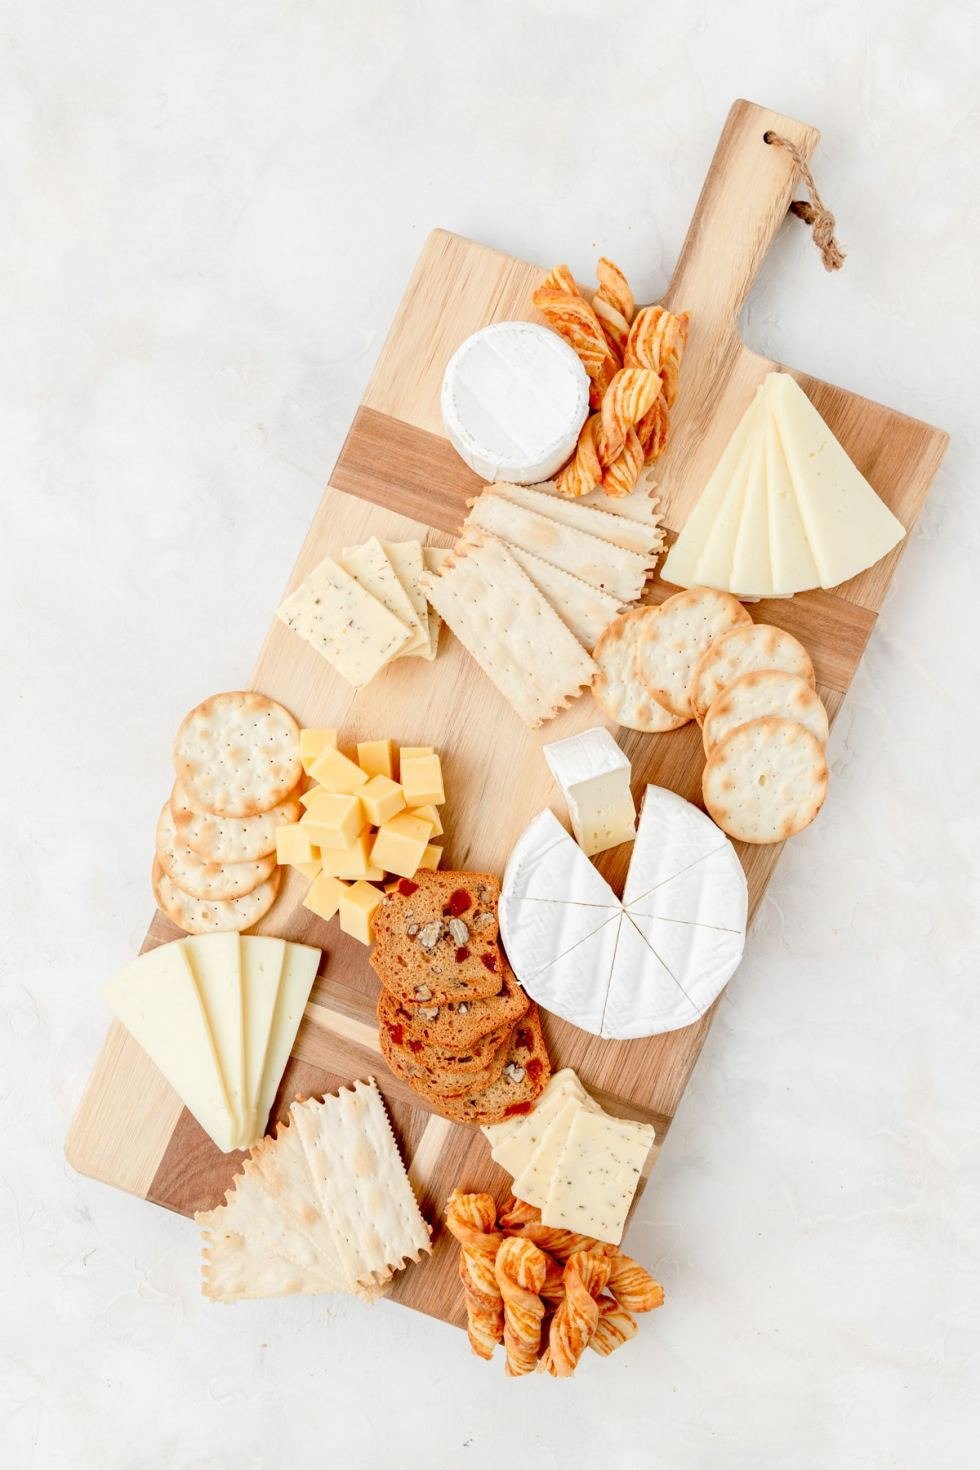 adding crackers to the board with cheese